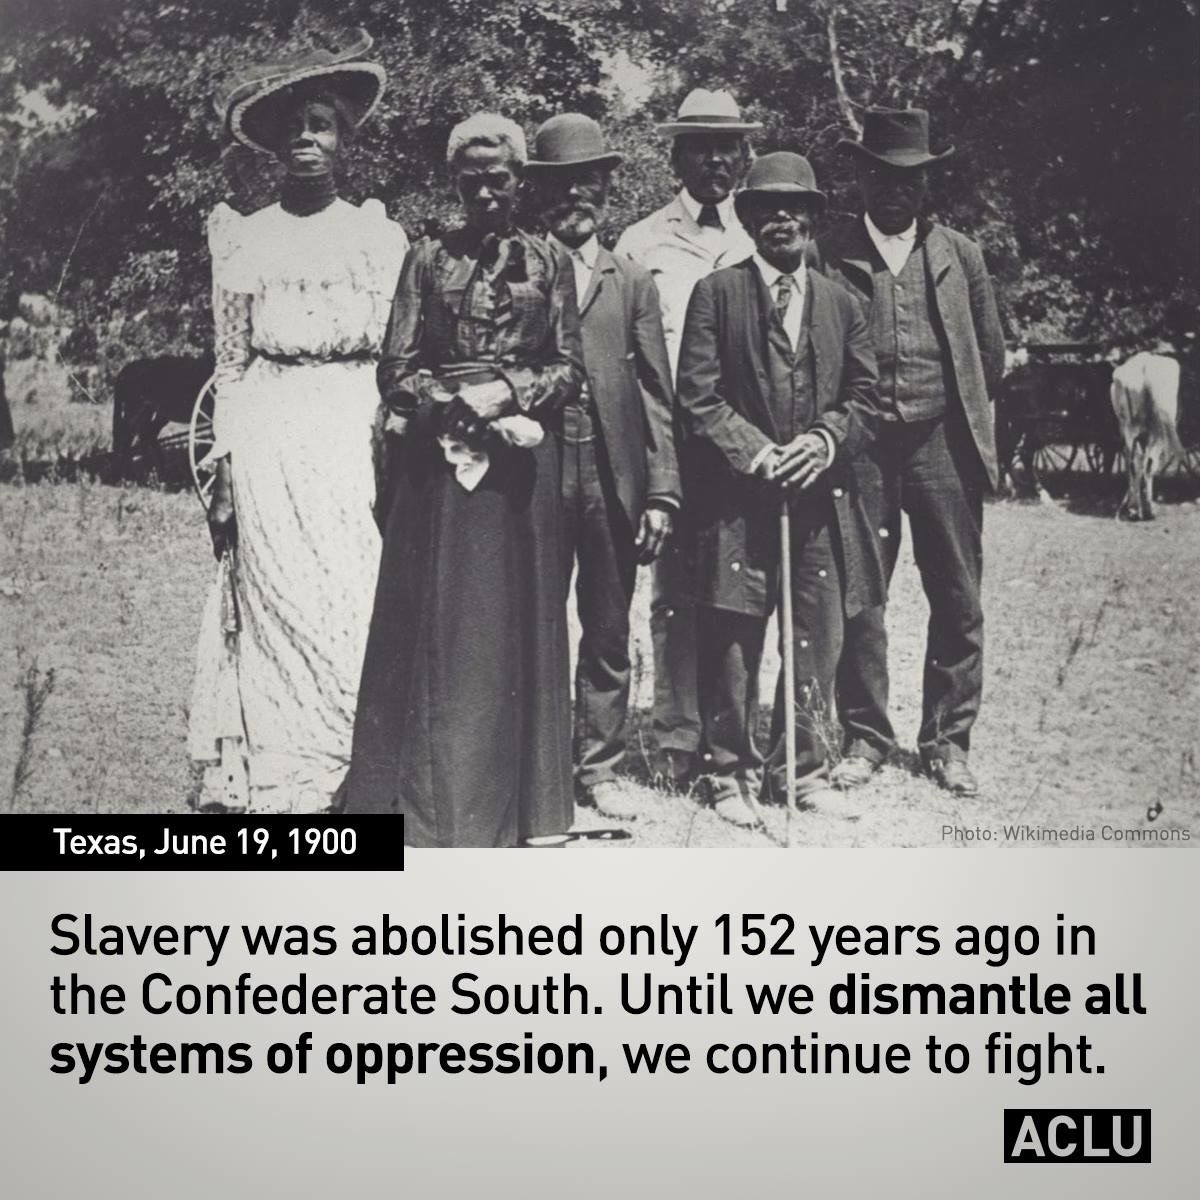 We're celebrating #Juneteenth by continuing the fight for freedom for...